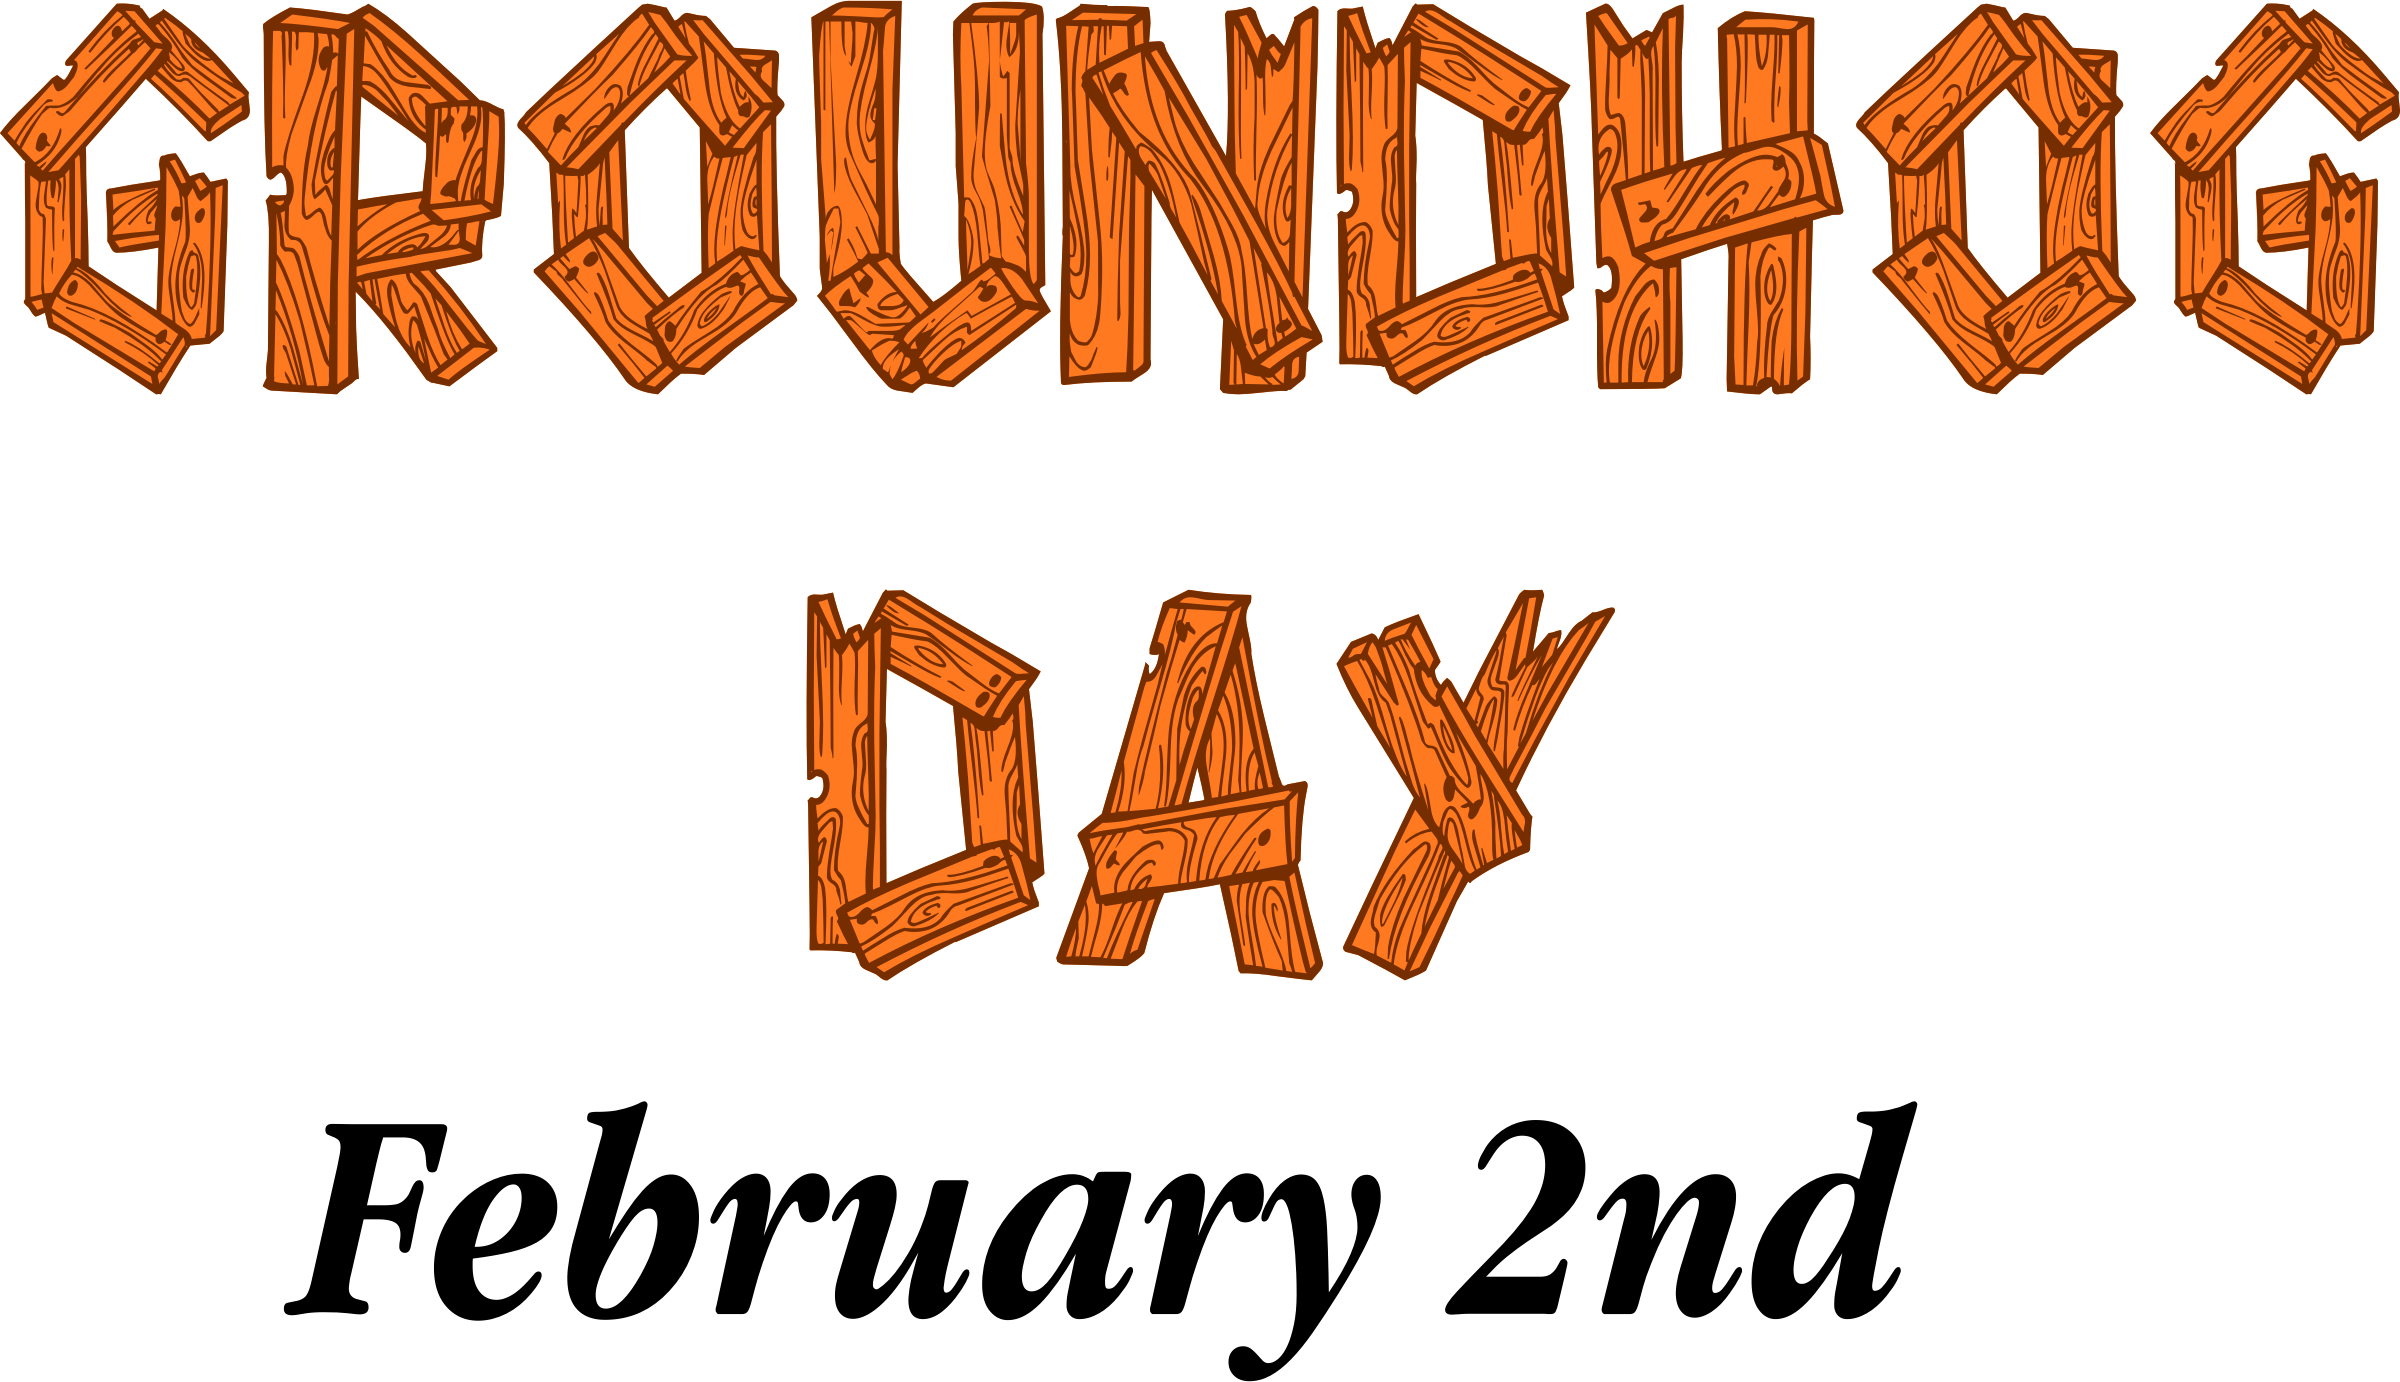 Groundhog Day Clipart Sign free image.